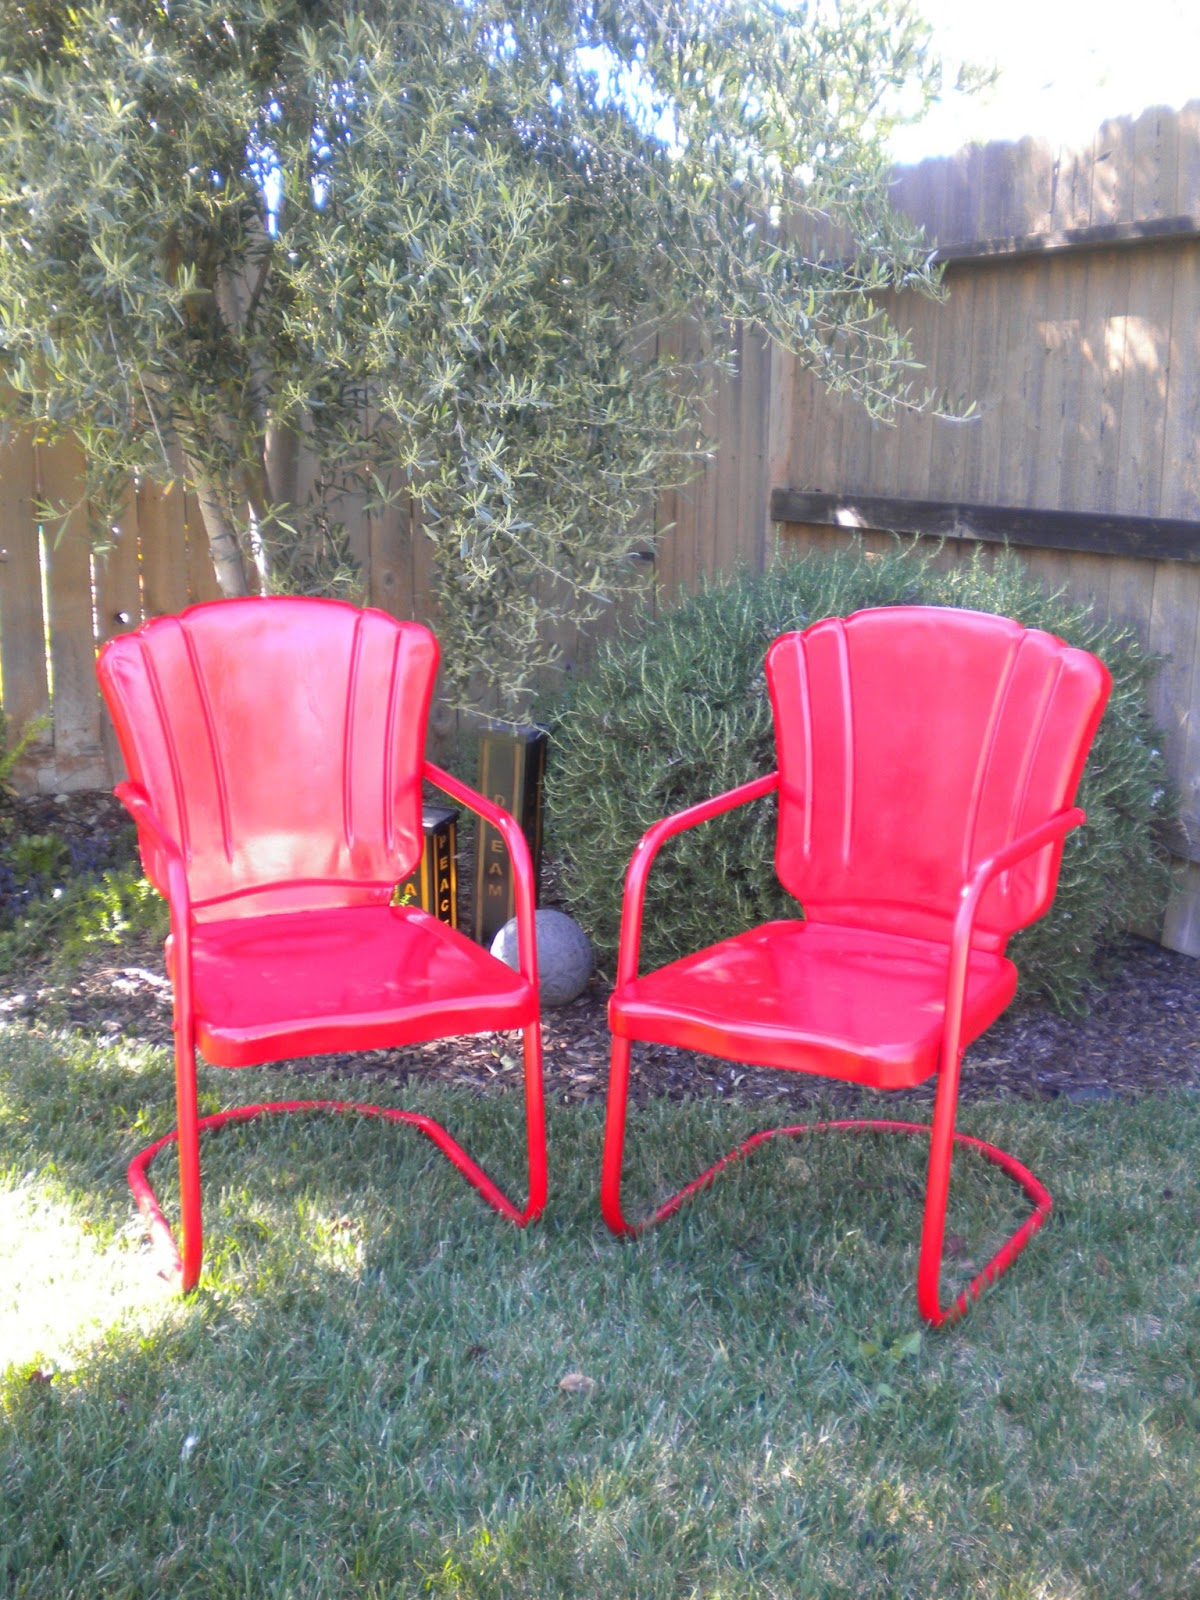 Vintage Metal Garden Chairs Welcome To Metro Retro Antique Metal Lawn Chairs Ebay Furniture